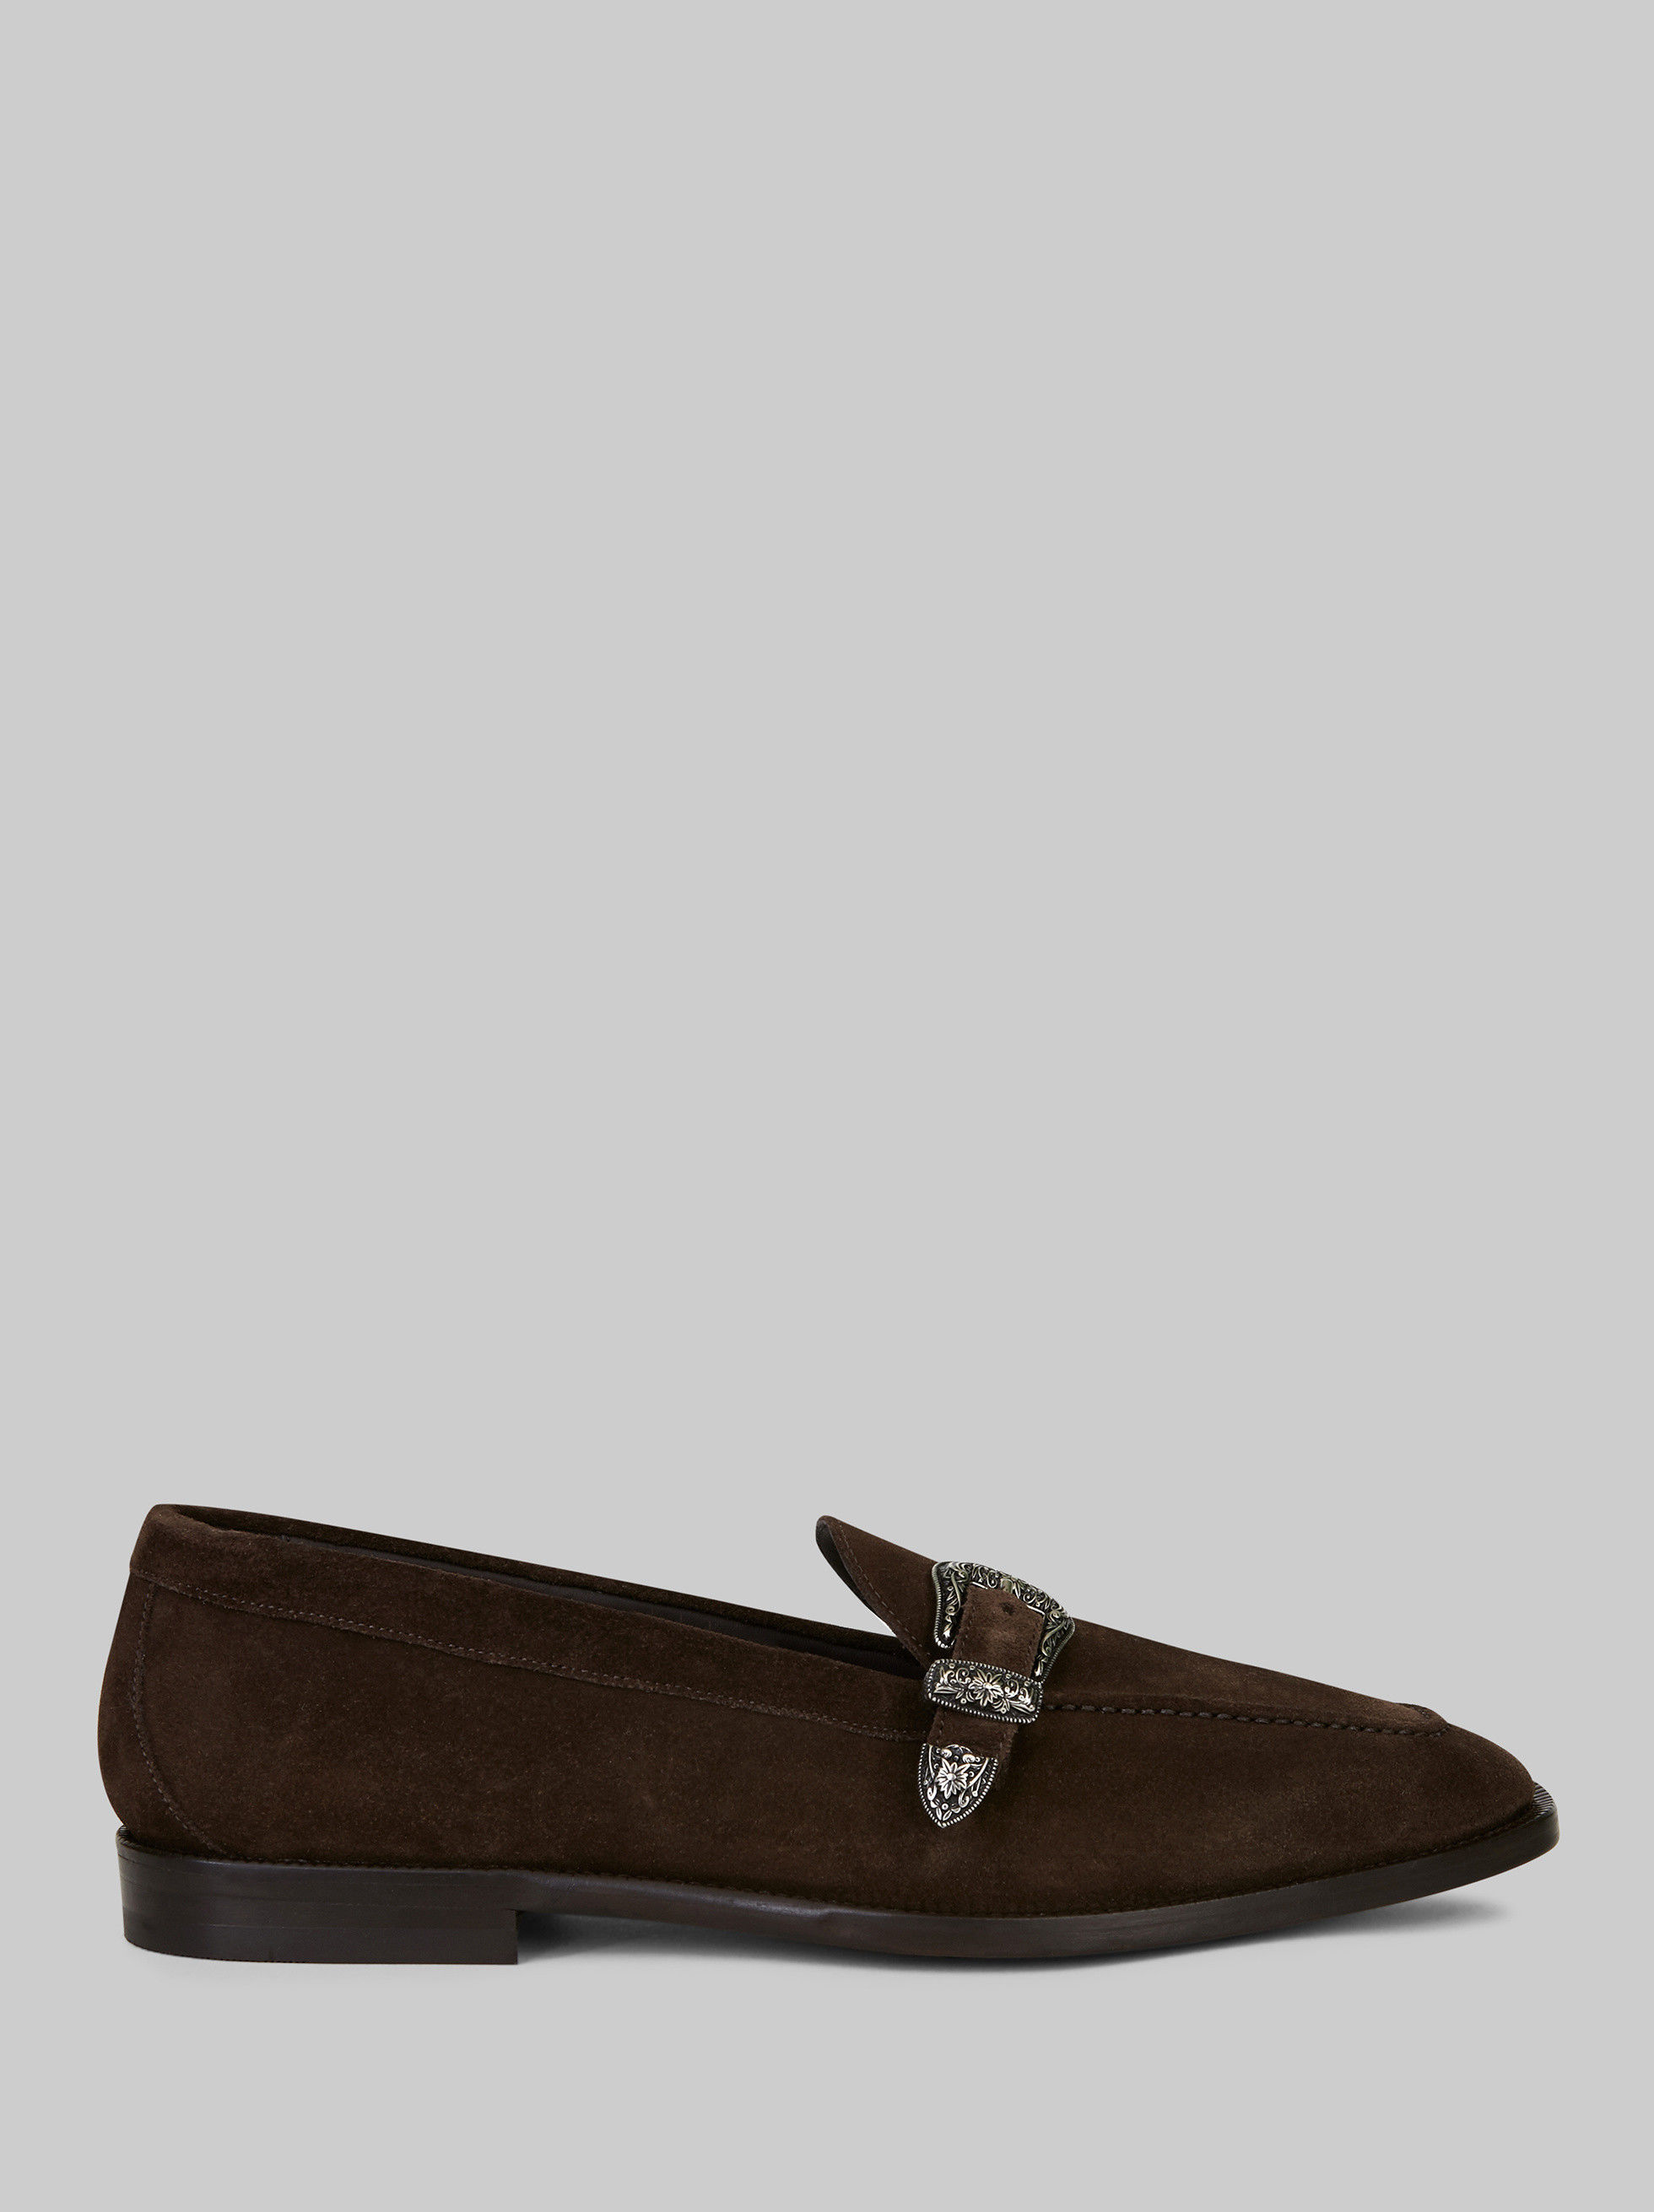 SUEDE LOAFERS WITH BUCKLE